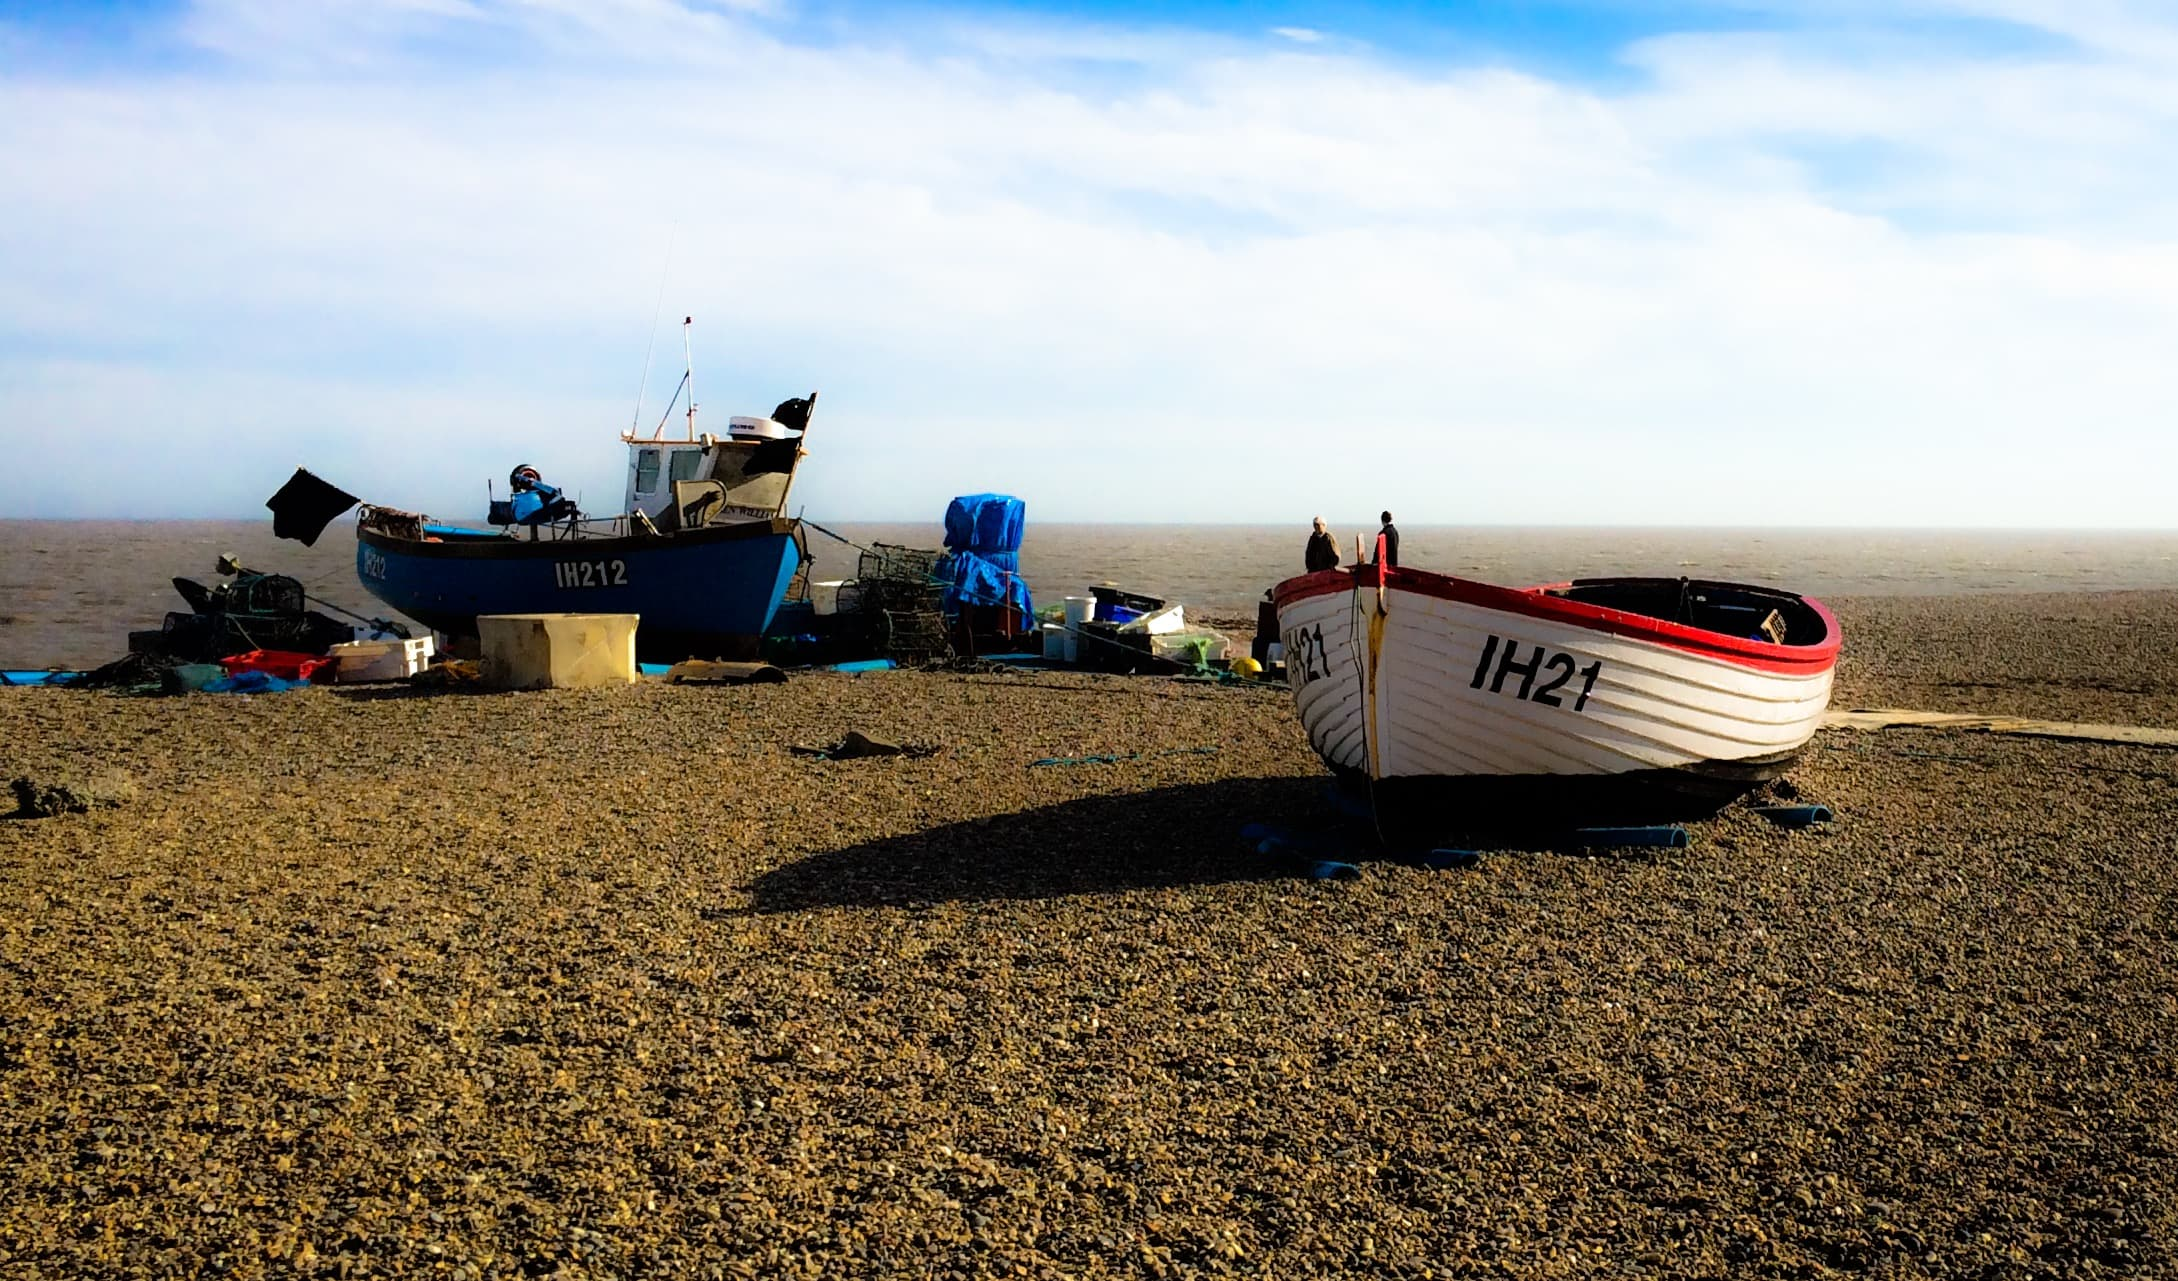 Aldeburgh, England: The Best Fish & Chips and More